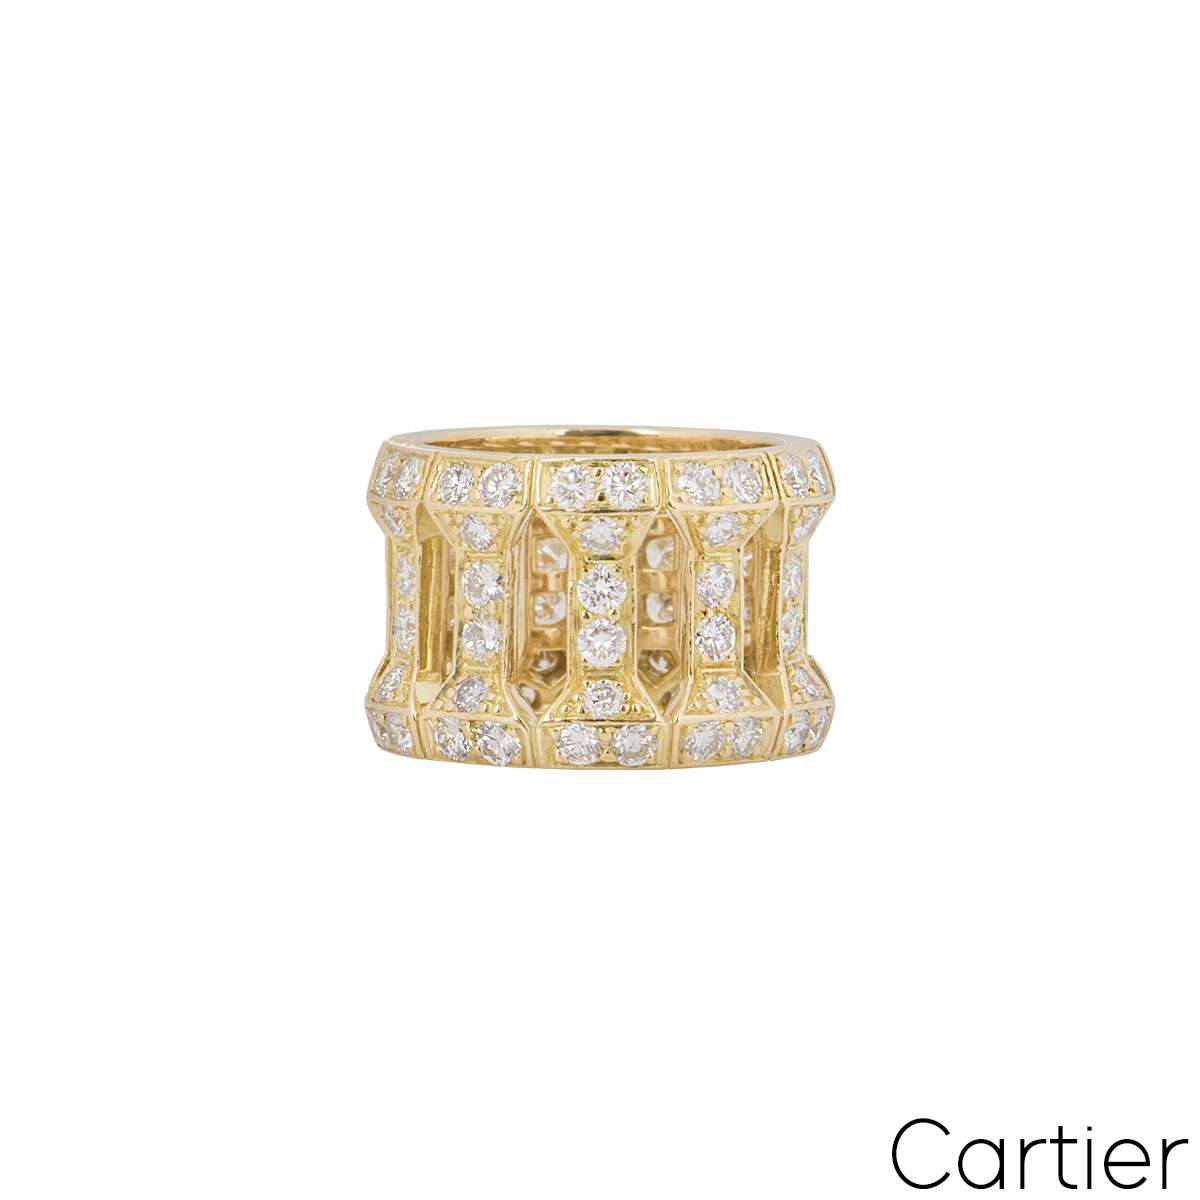 Cartier Yellow Gold Diamond Dress Ring